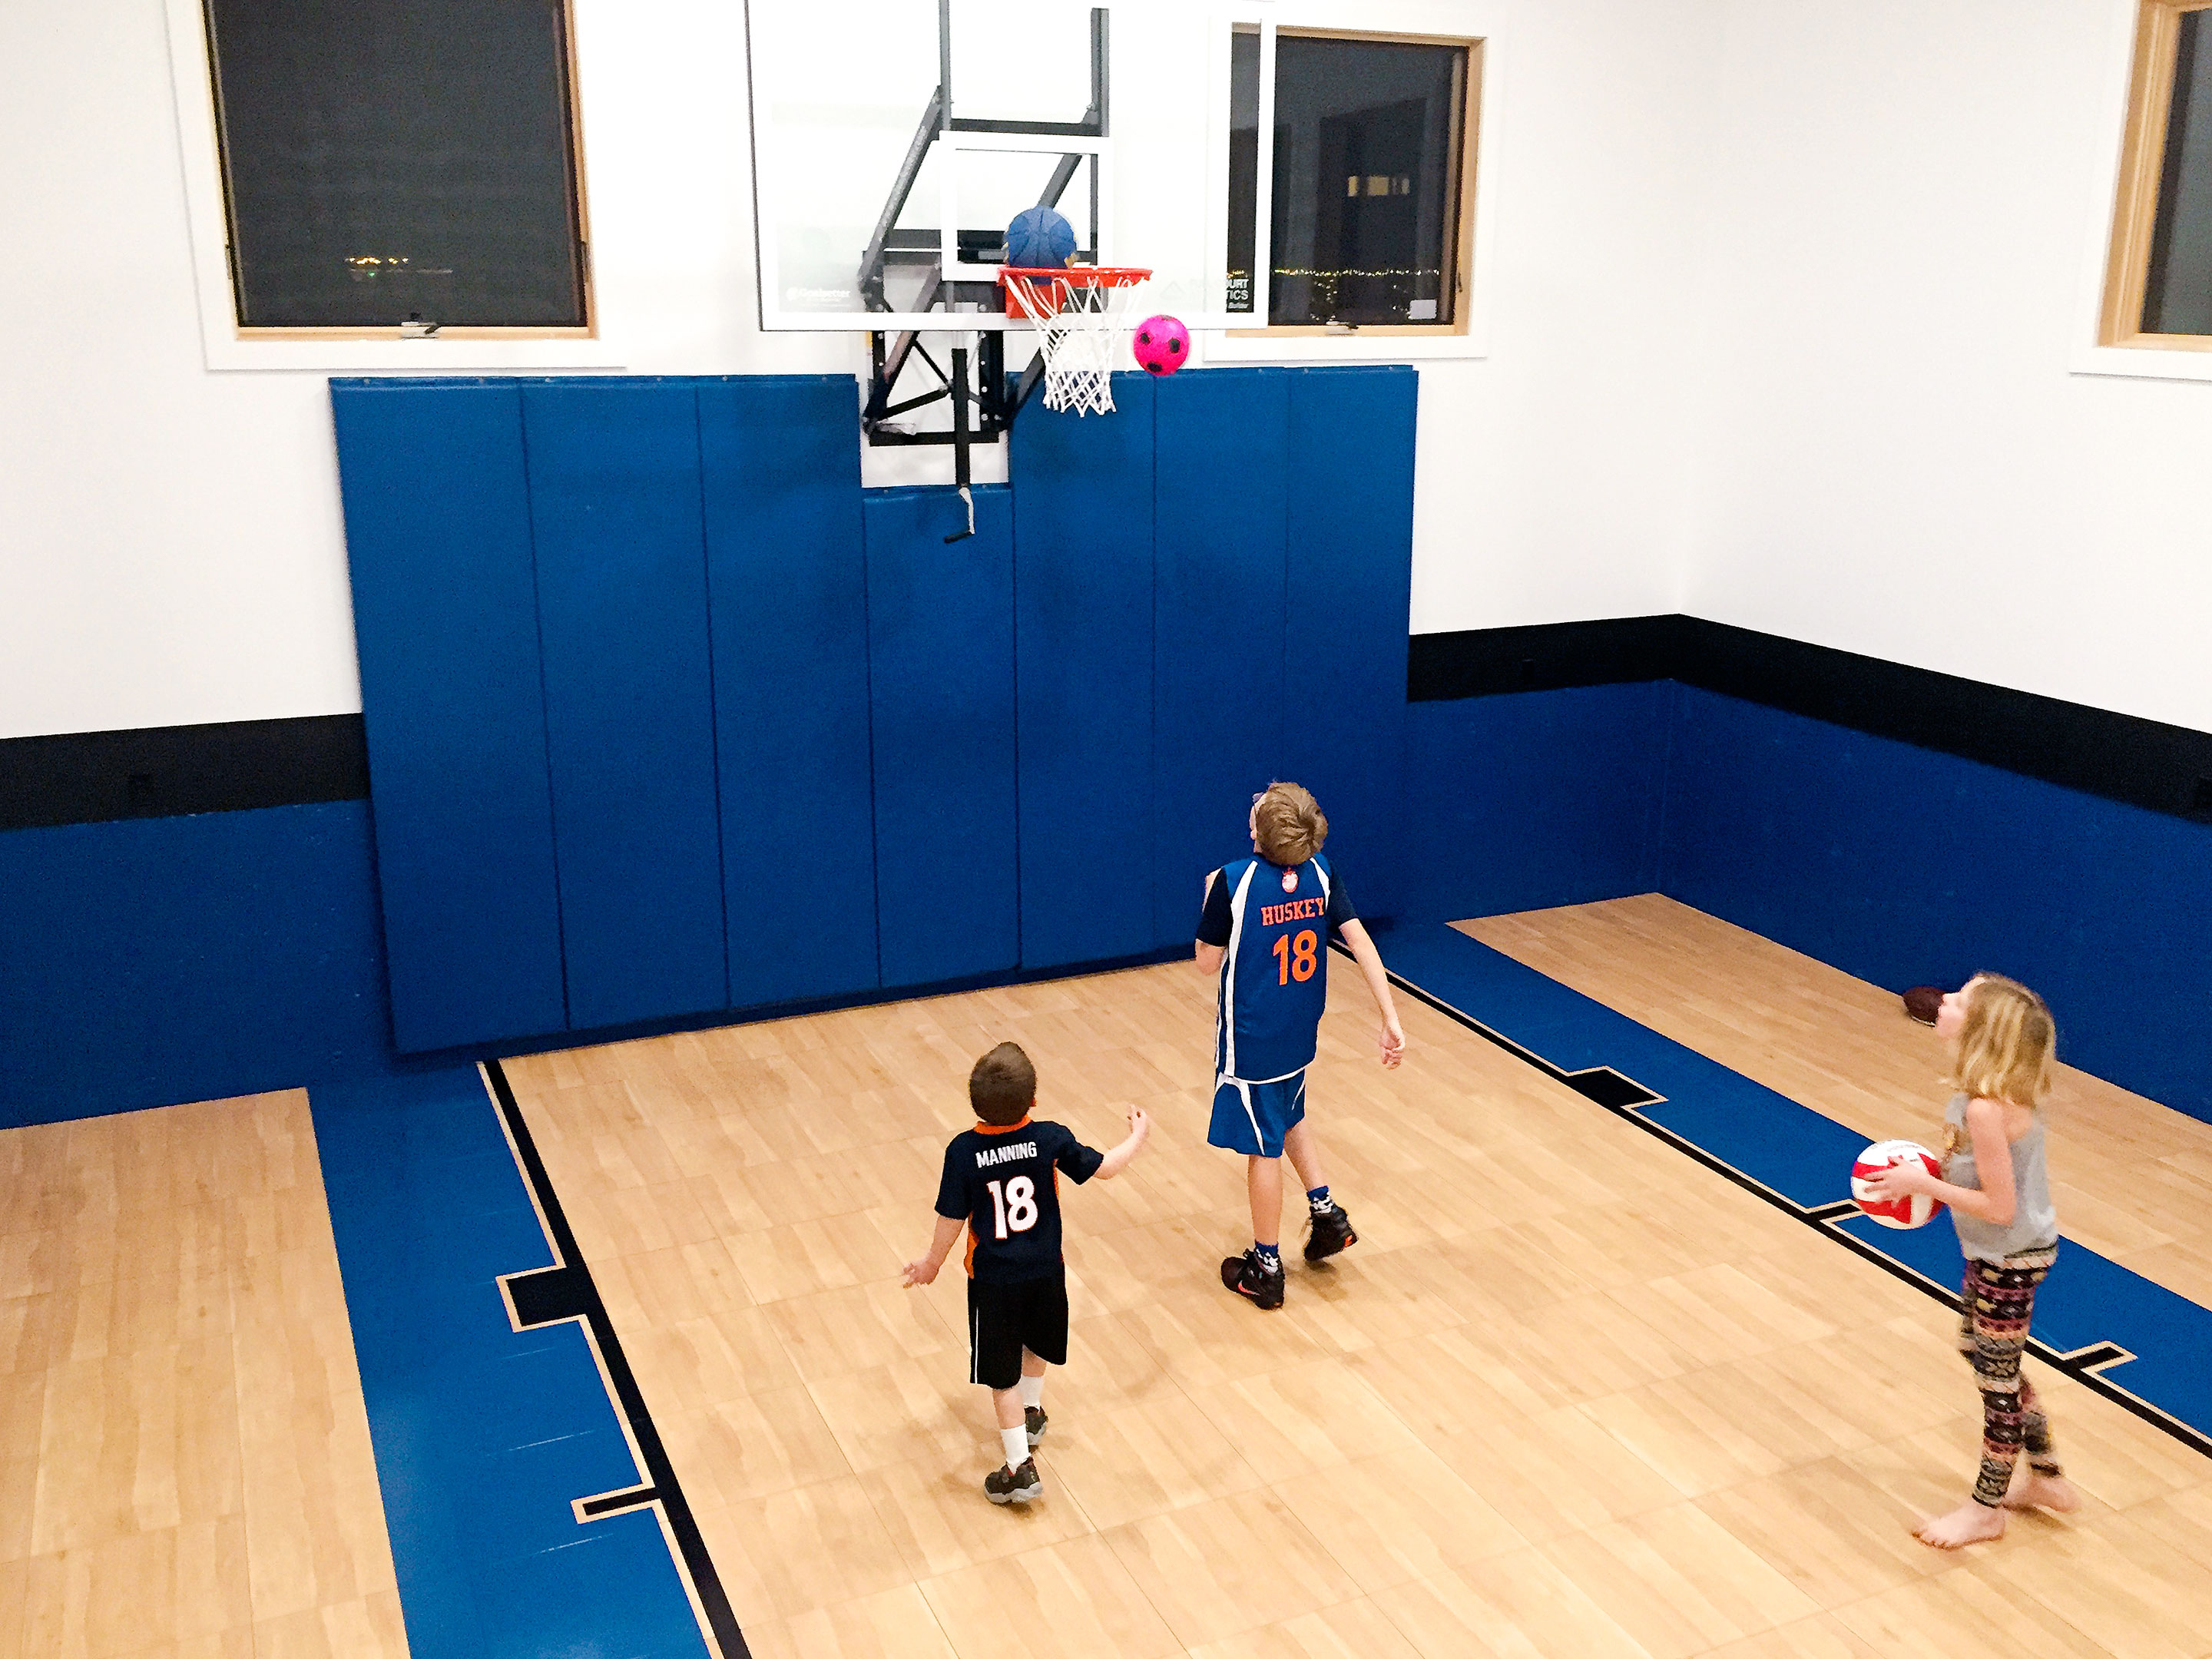 Play ball                                                  $5,000+                                                  Forget the driveway. You can practice indoors all winter like an NBA star. To be sure, a full 94-by-50-foot indoor court can run upwards of $50,000, and that's assuming you have the space. But those are the exceptions not the rule for private homes, according to SnapSports, an athletic flooring company based in Salt Lake City, which installs about 1,000 play spaces a year. A 30-by-30-foot practice area with synthetic flooring, painted key and foul lines, and a hoop costs as little as $5,000, or about $5.50 per square foot. Bumping up your budget to $10,000 gets you a 30-by-50-foot half court with wall pads and a logo. The company says it has installed courts of all sizes in basements, barns, and unused guesthouses. While 16-foot-high ceilings are ideal, salesman Jimmy Wood says SnapSports has worked with ceilings as low as 10 feet.